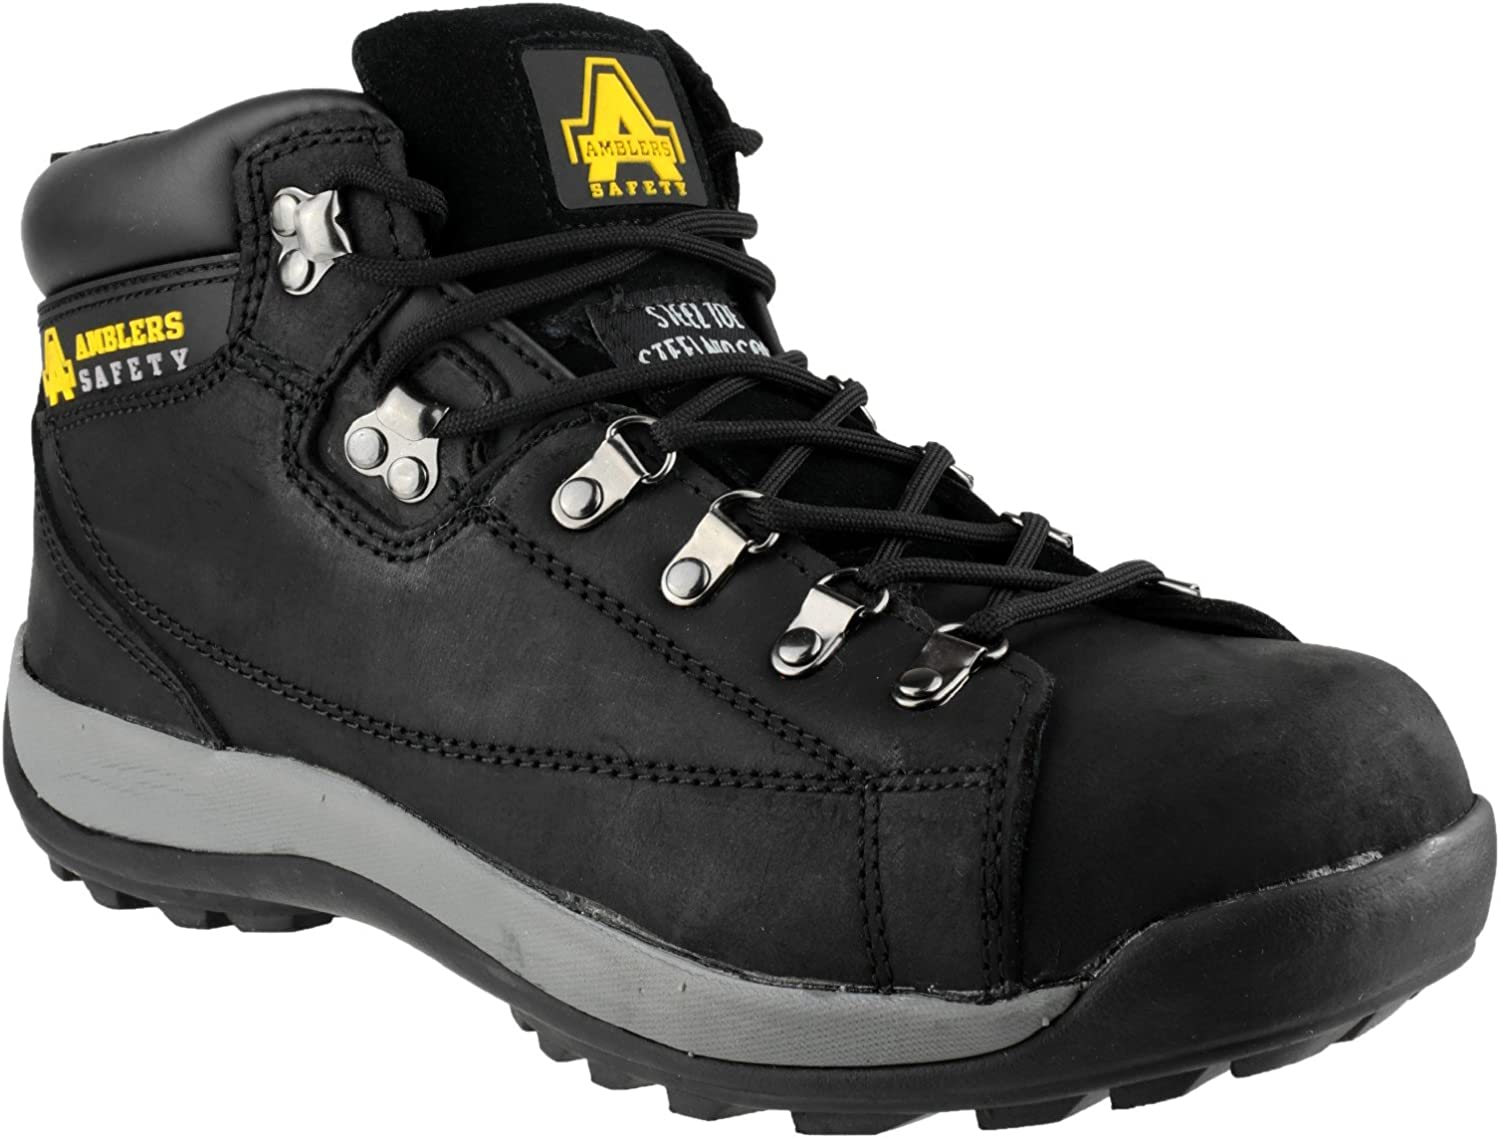 New Ladies Amblers Steel FS123 Safety Boot Womens Lace-Up shoes Safety Footwear